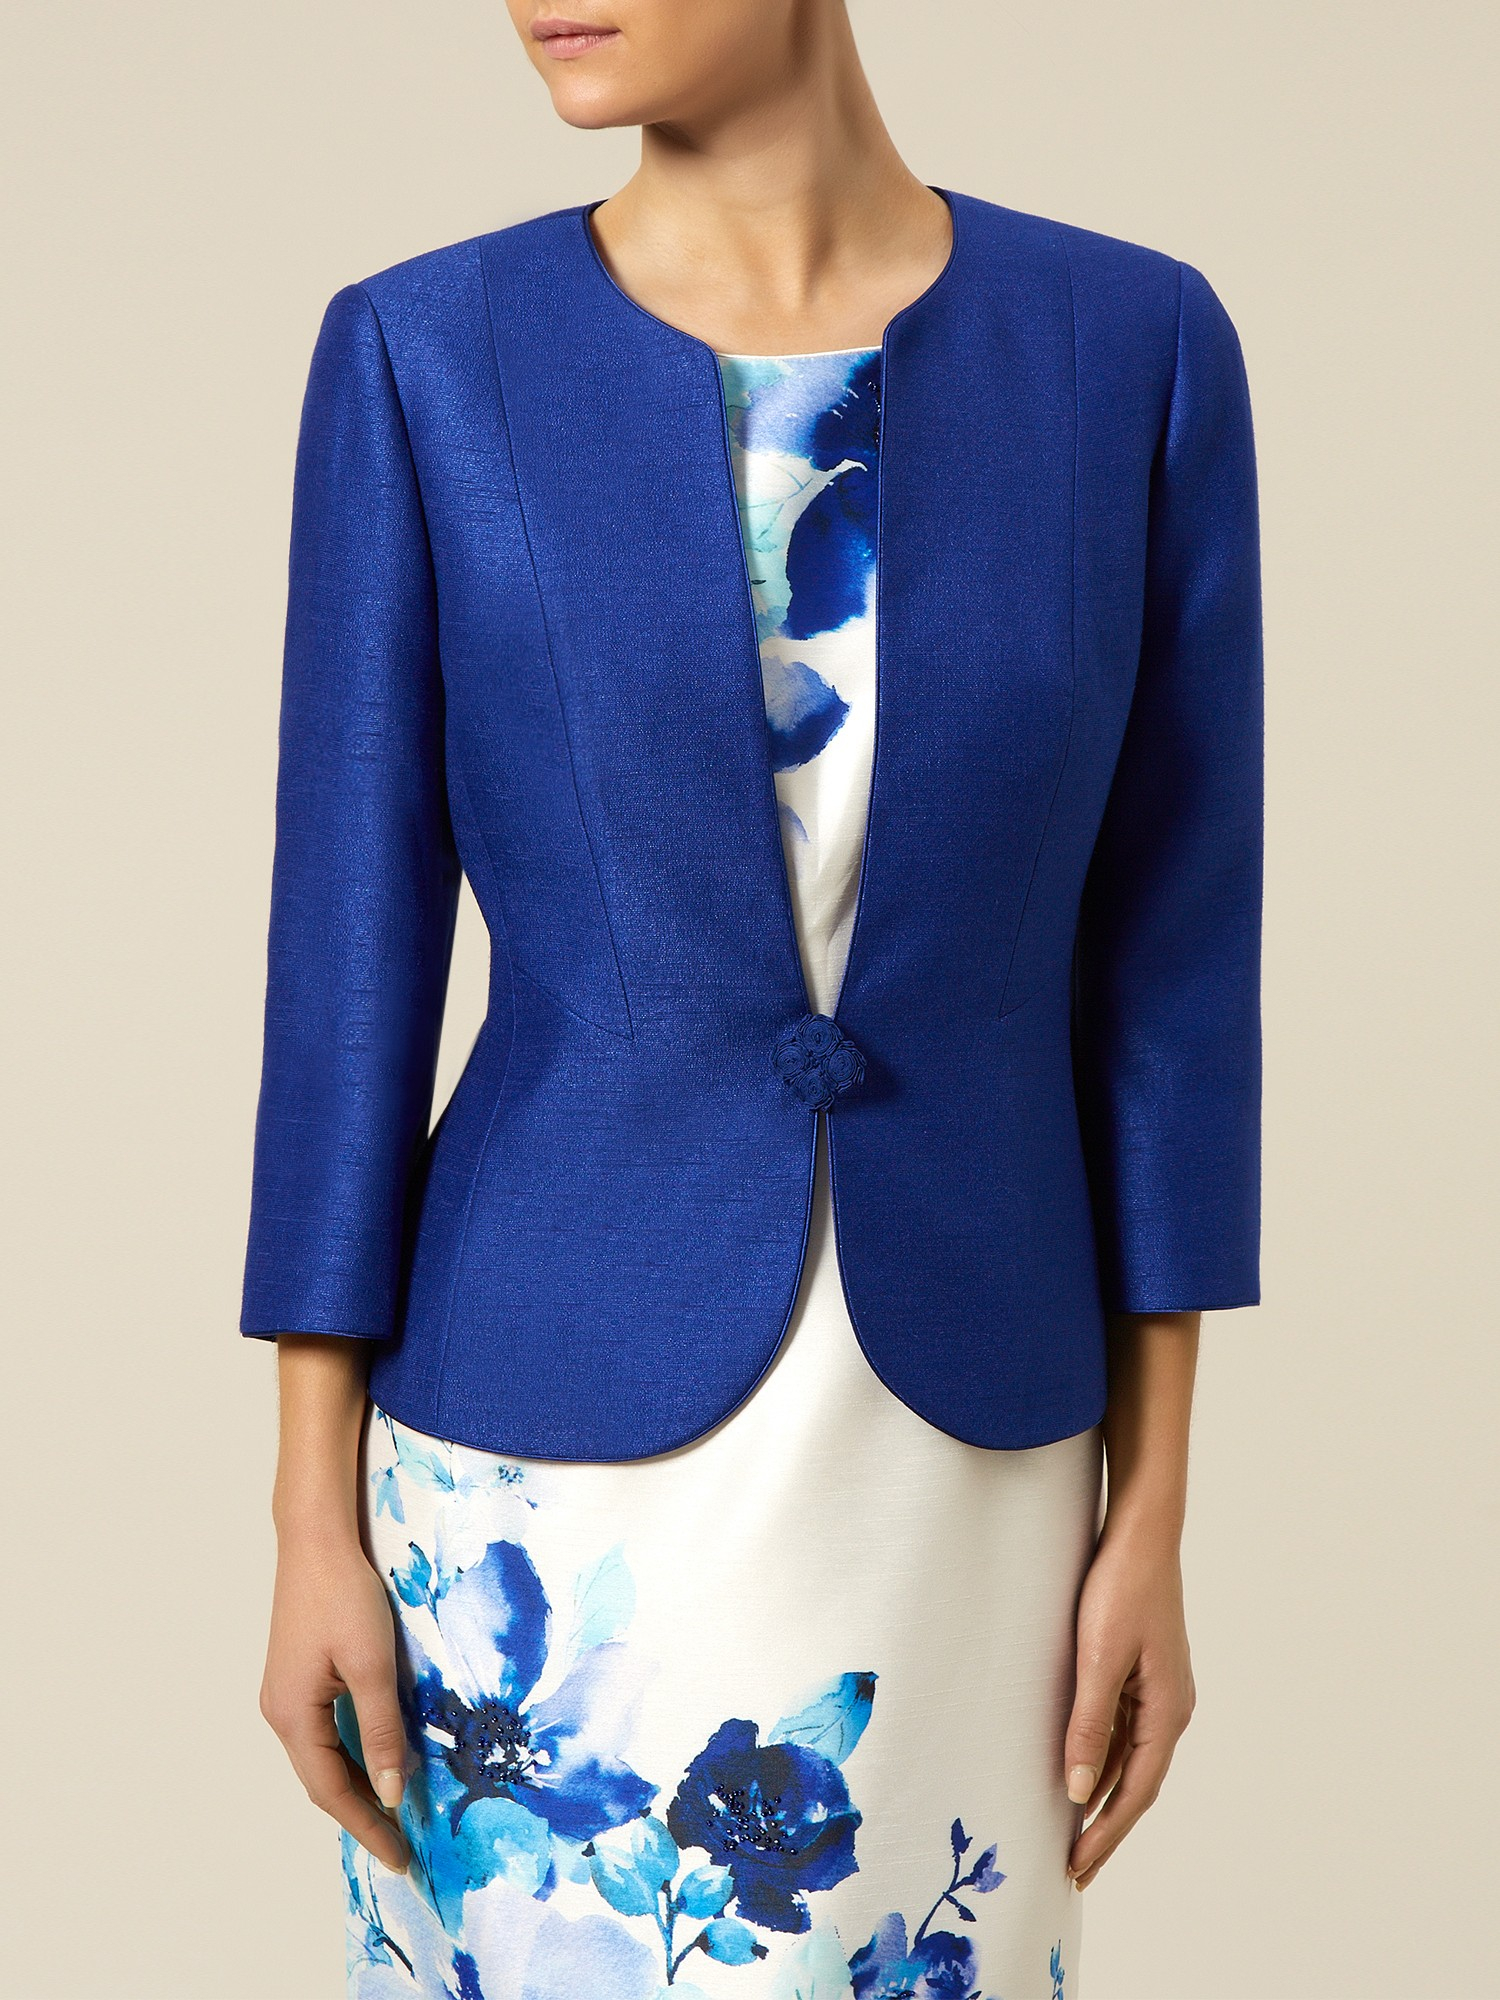 Jacques vert Petite One Button Jacket in Blue